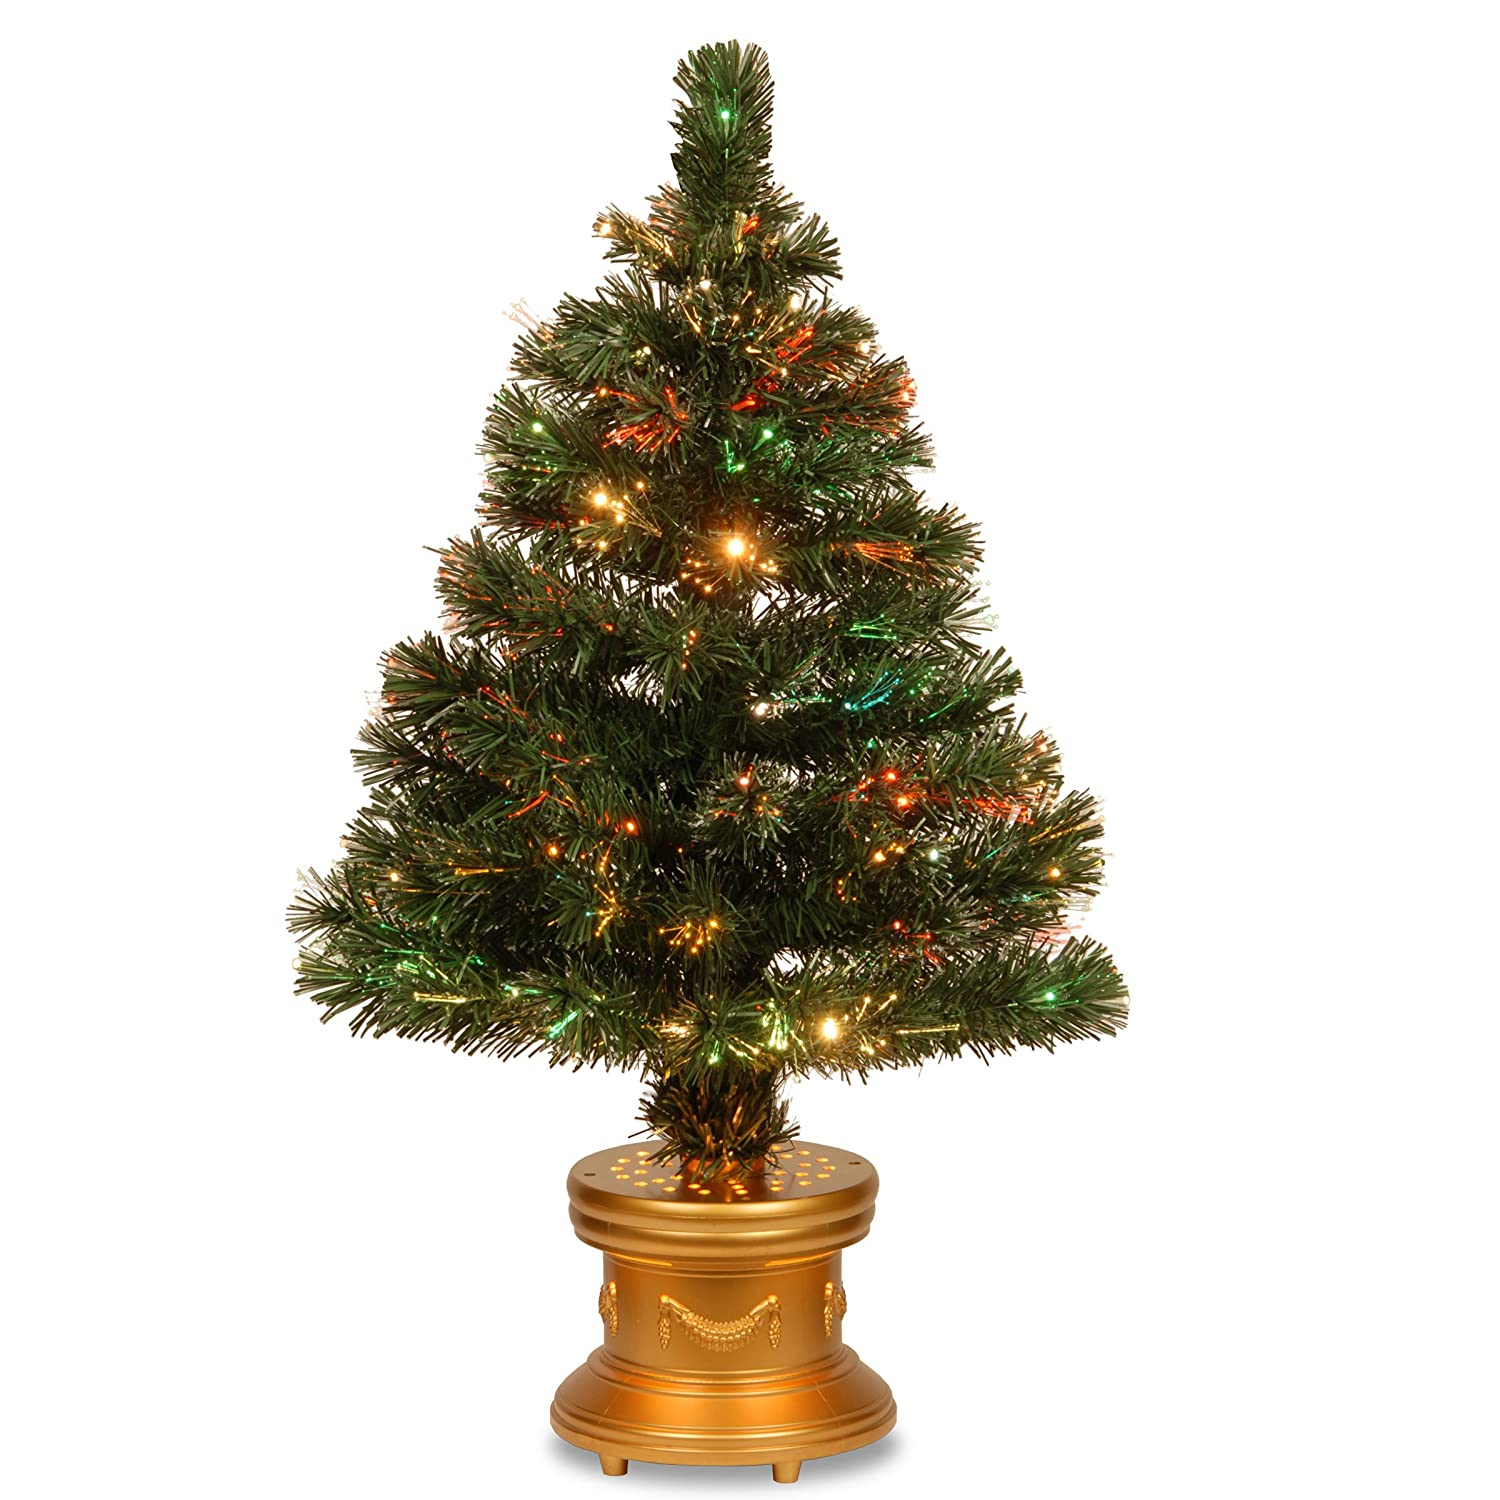 Christmas Tree Fiber Optic With Lights And Decorative Base